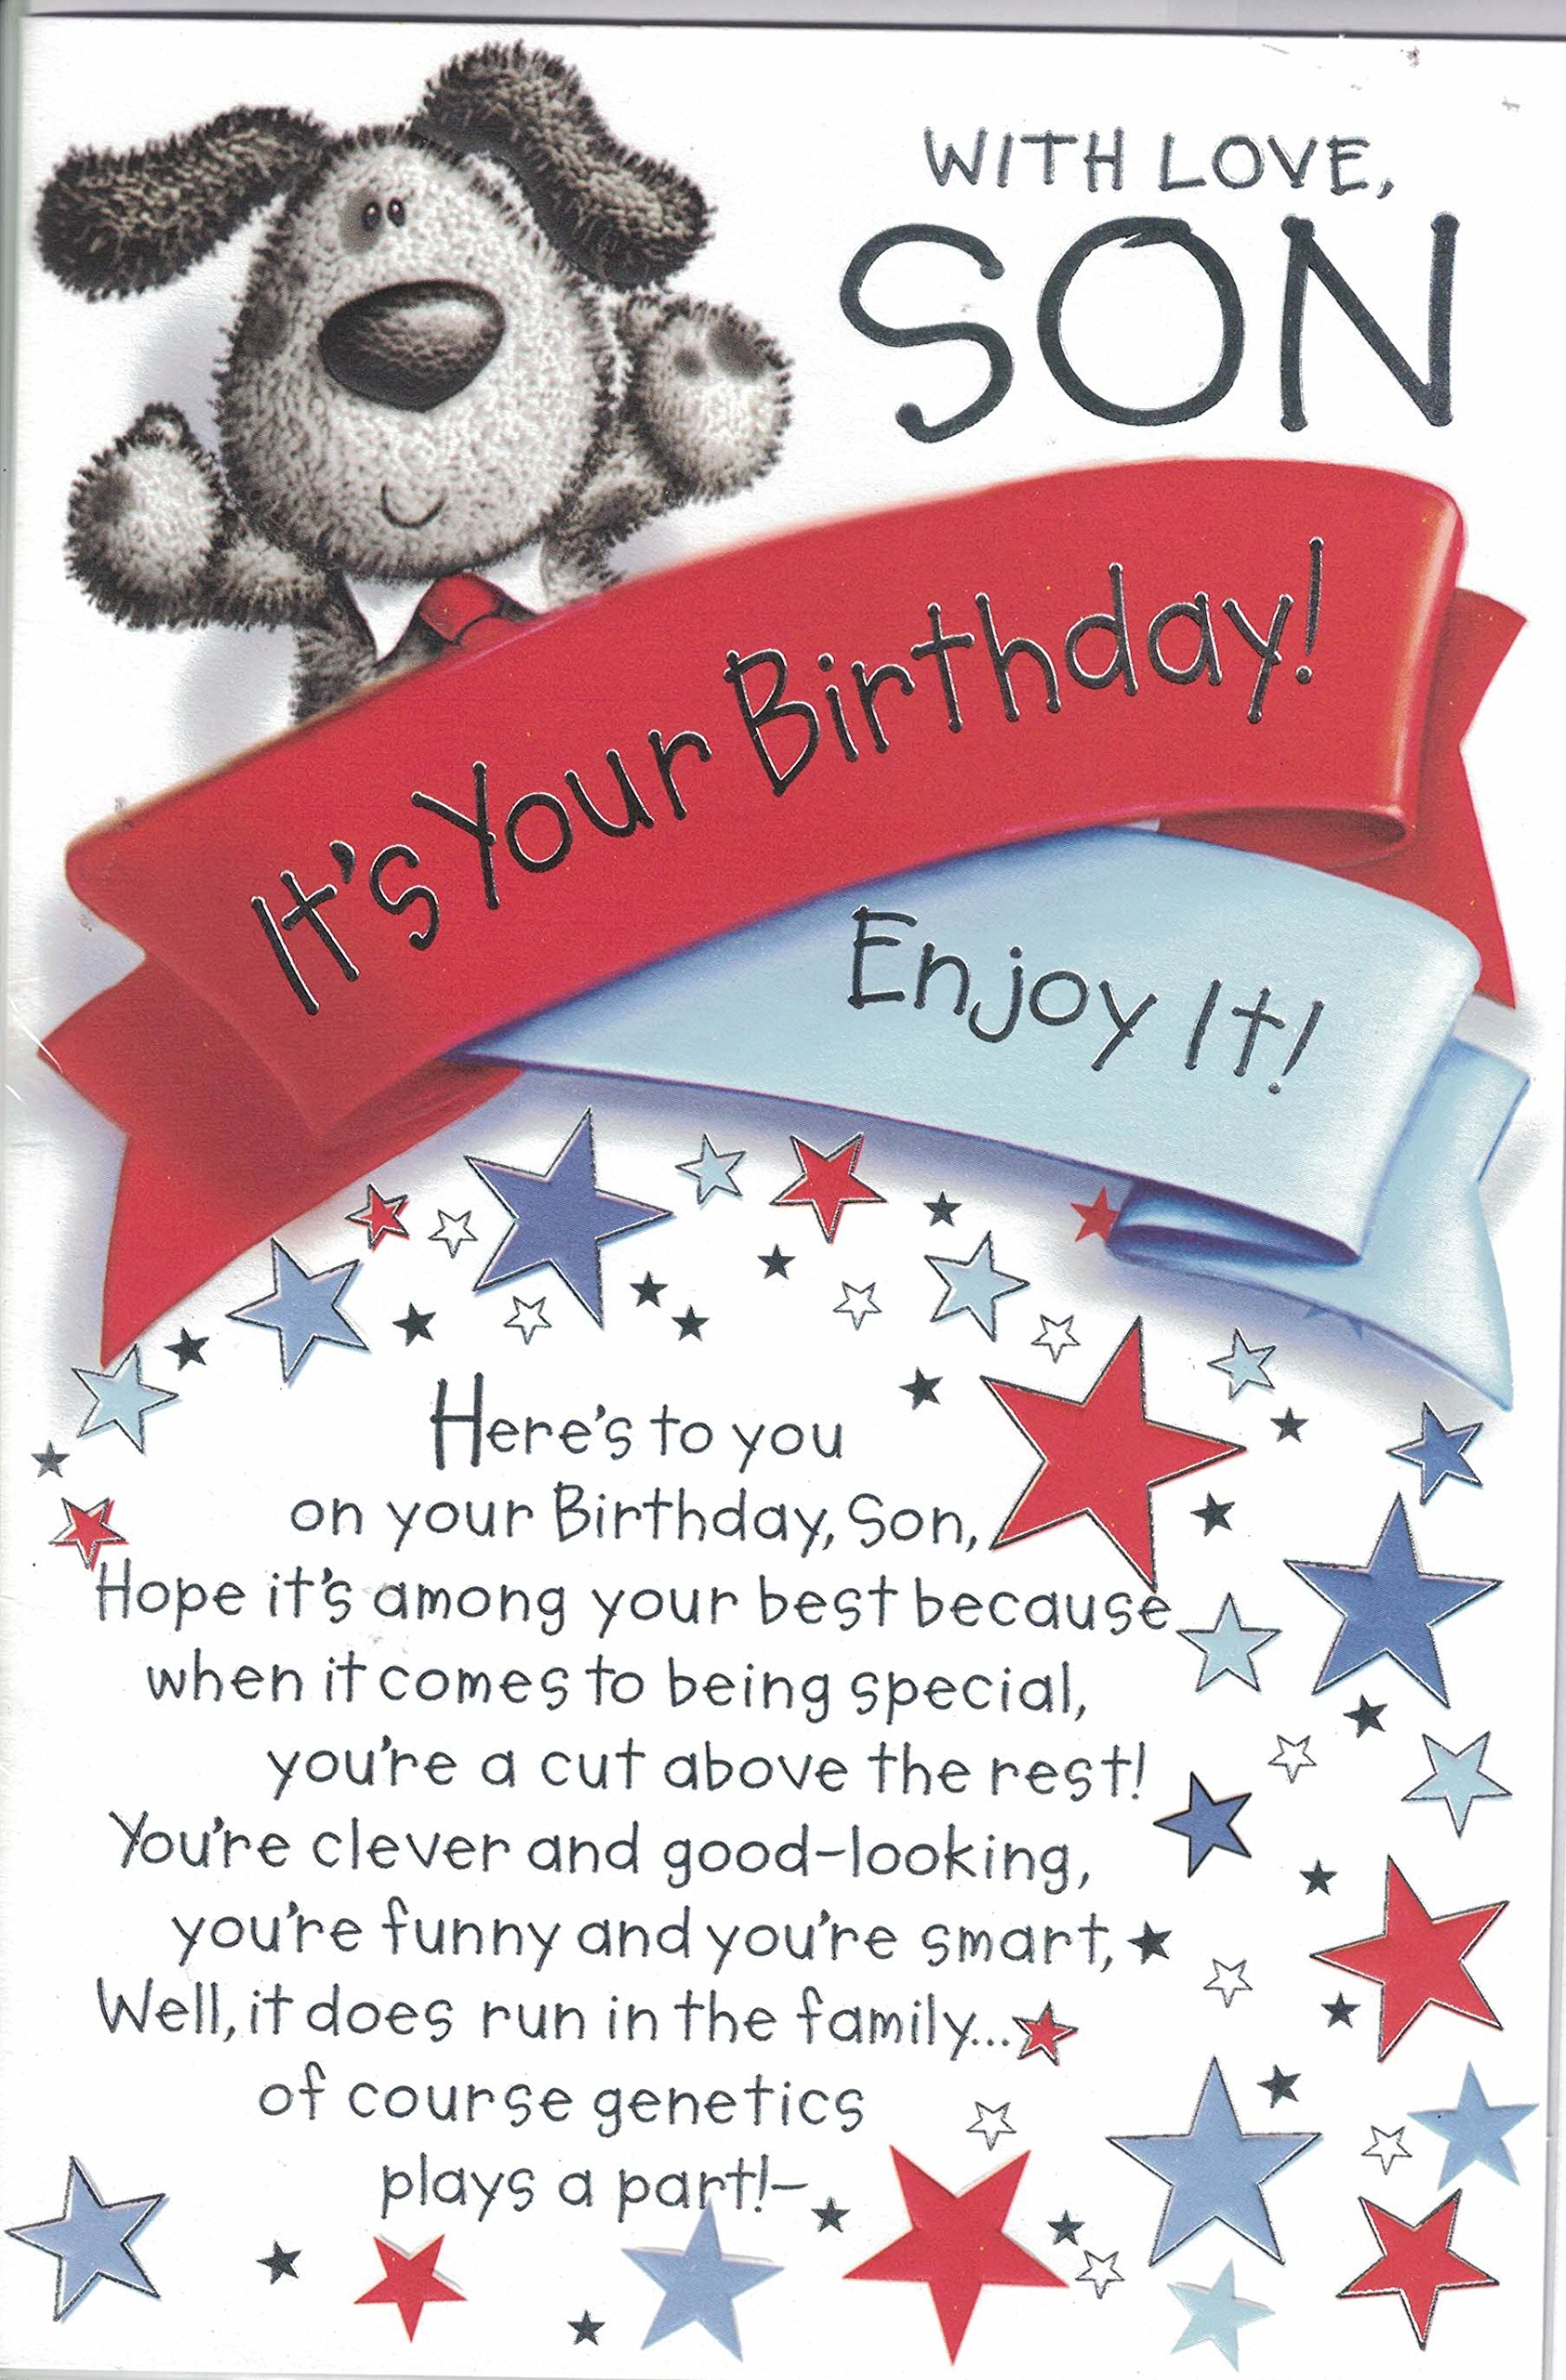 Special son birthday cards amazon son birthday card with love to our son on your birthday modern blue presents m4hsunfo